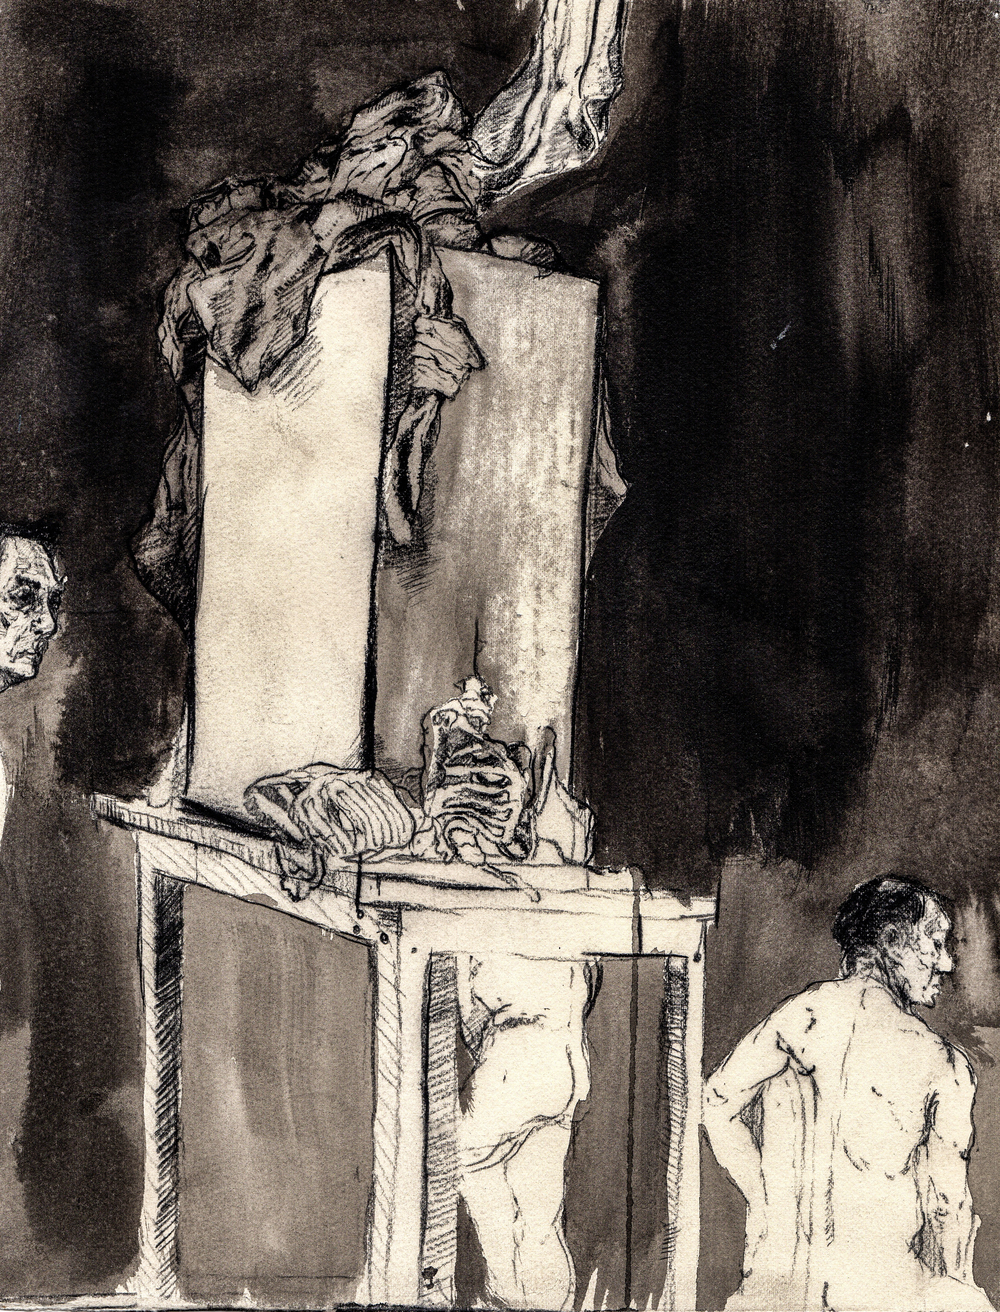 Guards 'round the slab.   2013. 11 x 13 inches. Ink wash on paper.